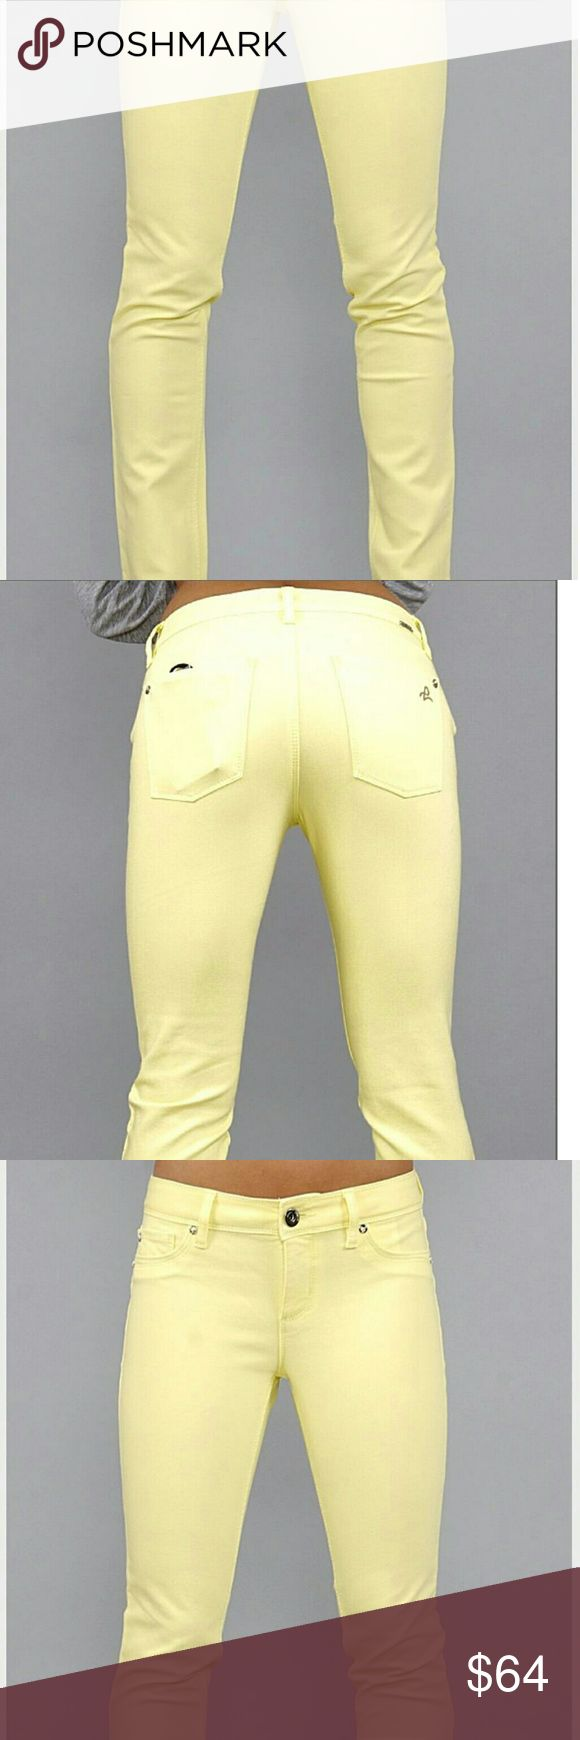 Selling this DL 1961 neon yellow angel skinny jeans size 25 on Poshmark! My username is: onefashionday12. #shopmycloset #poshmark #fashion #shopping #style #forsale #DL1961 #Pants